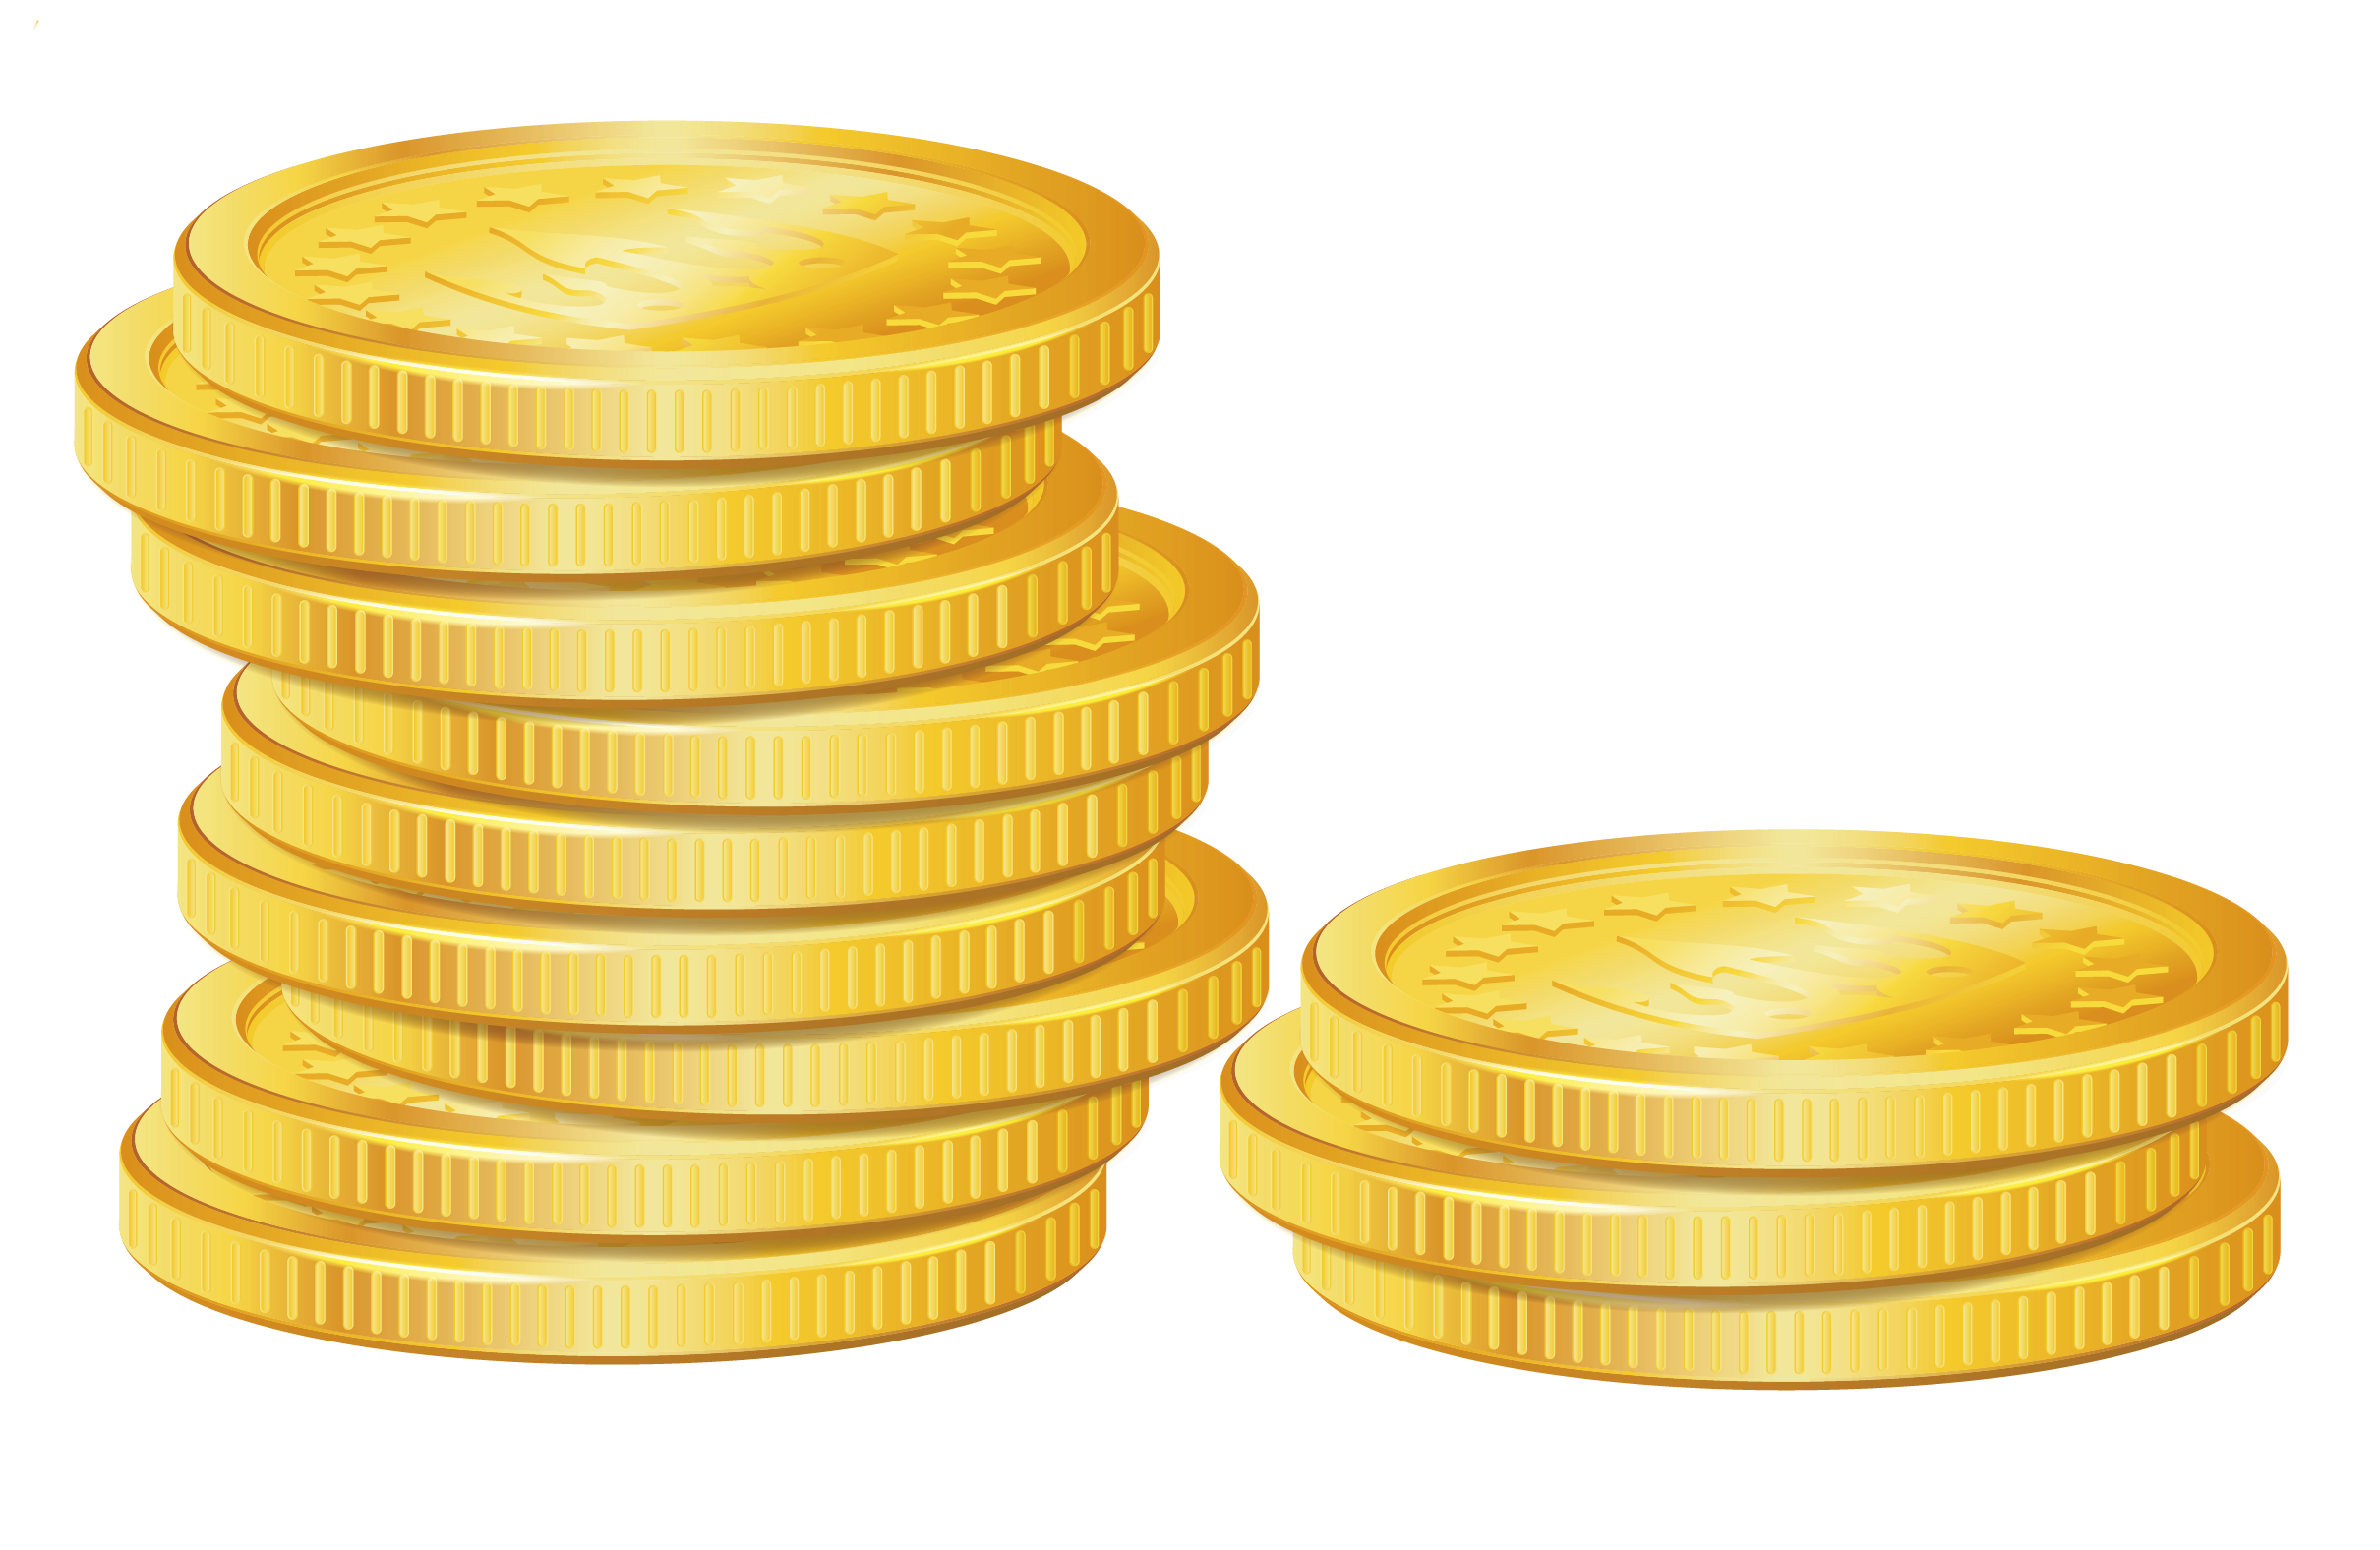 coin clipart transparent background